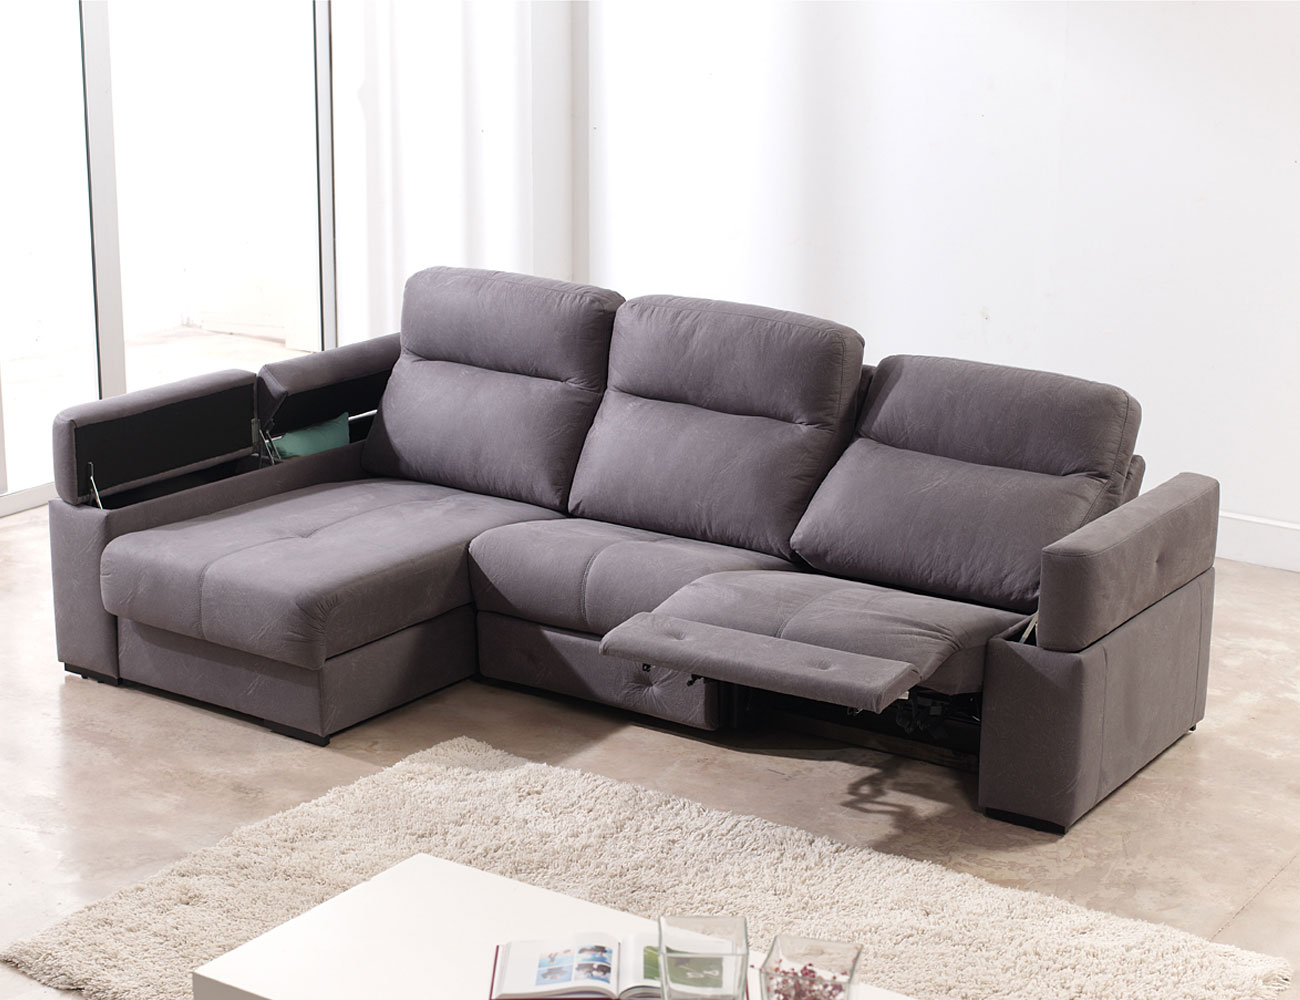 Sofa chaiselongue relax motor electrico 3 arcon 11